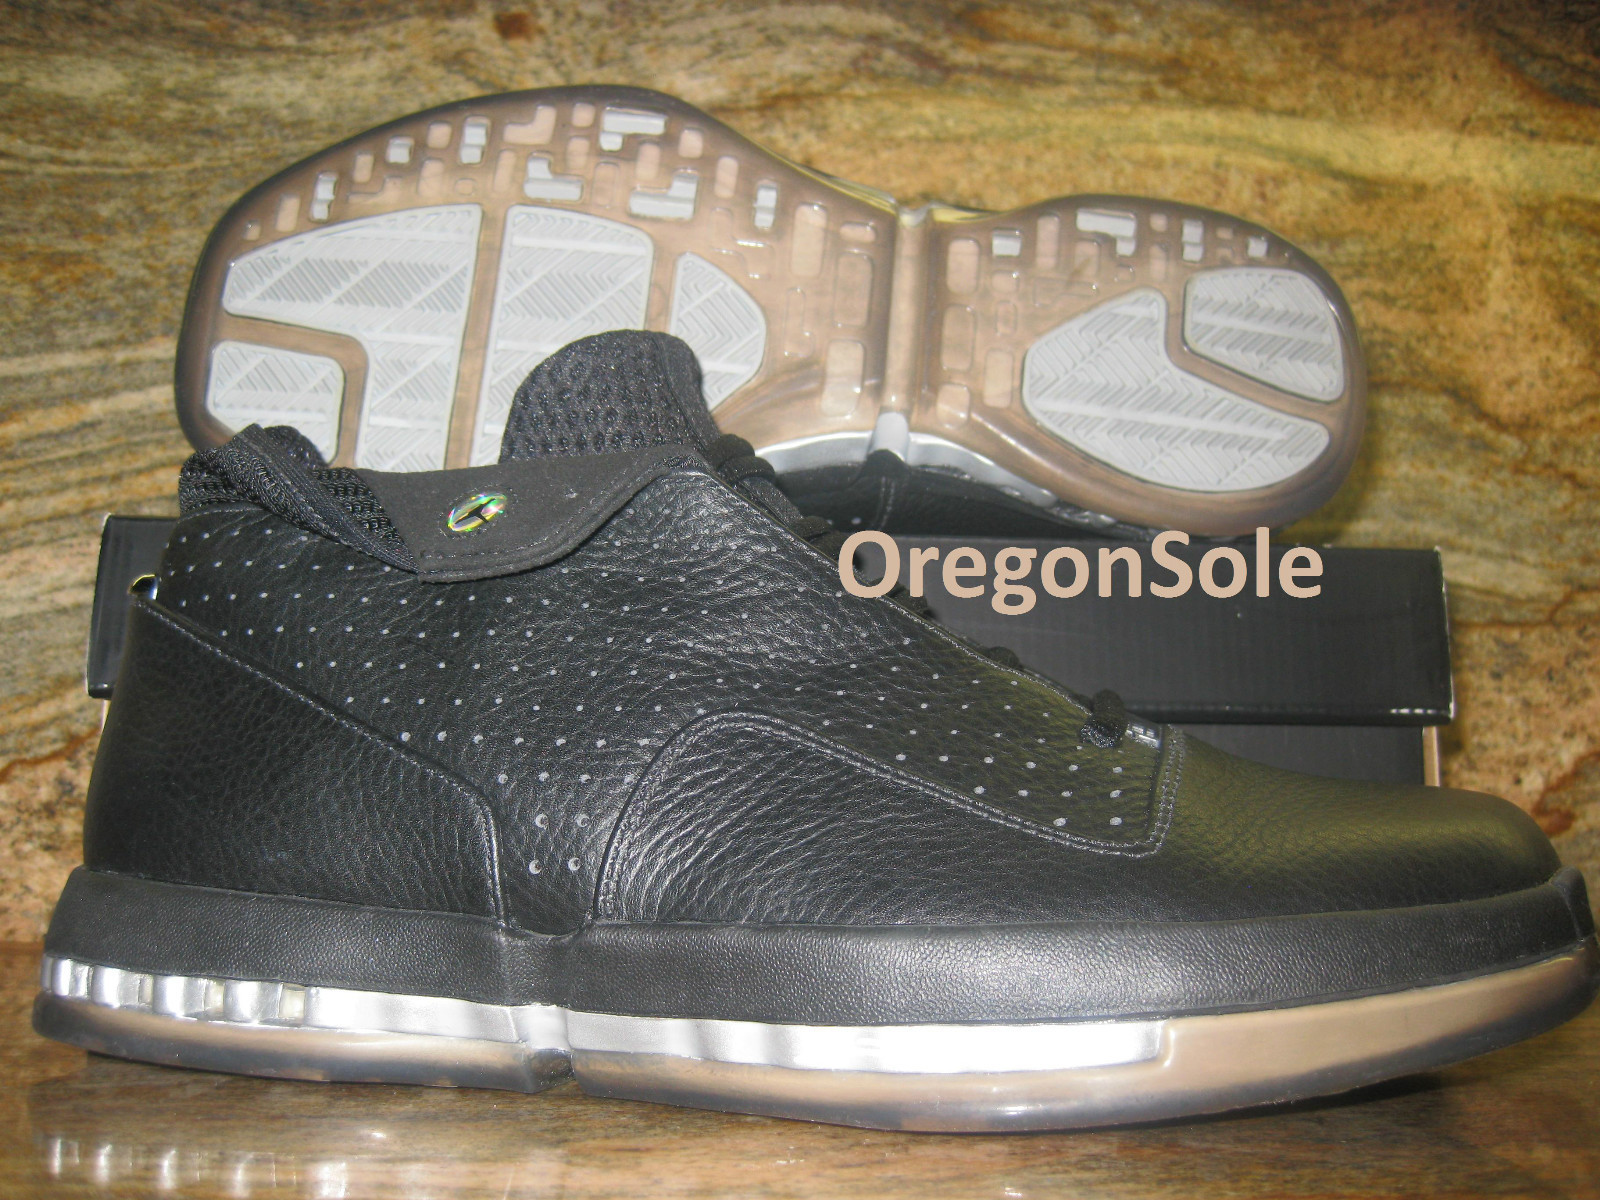 brand new c9cce 3bf86 Air Jordan 16 Retro Low - Black Metallic Silver - Unreleased Sample